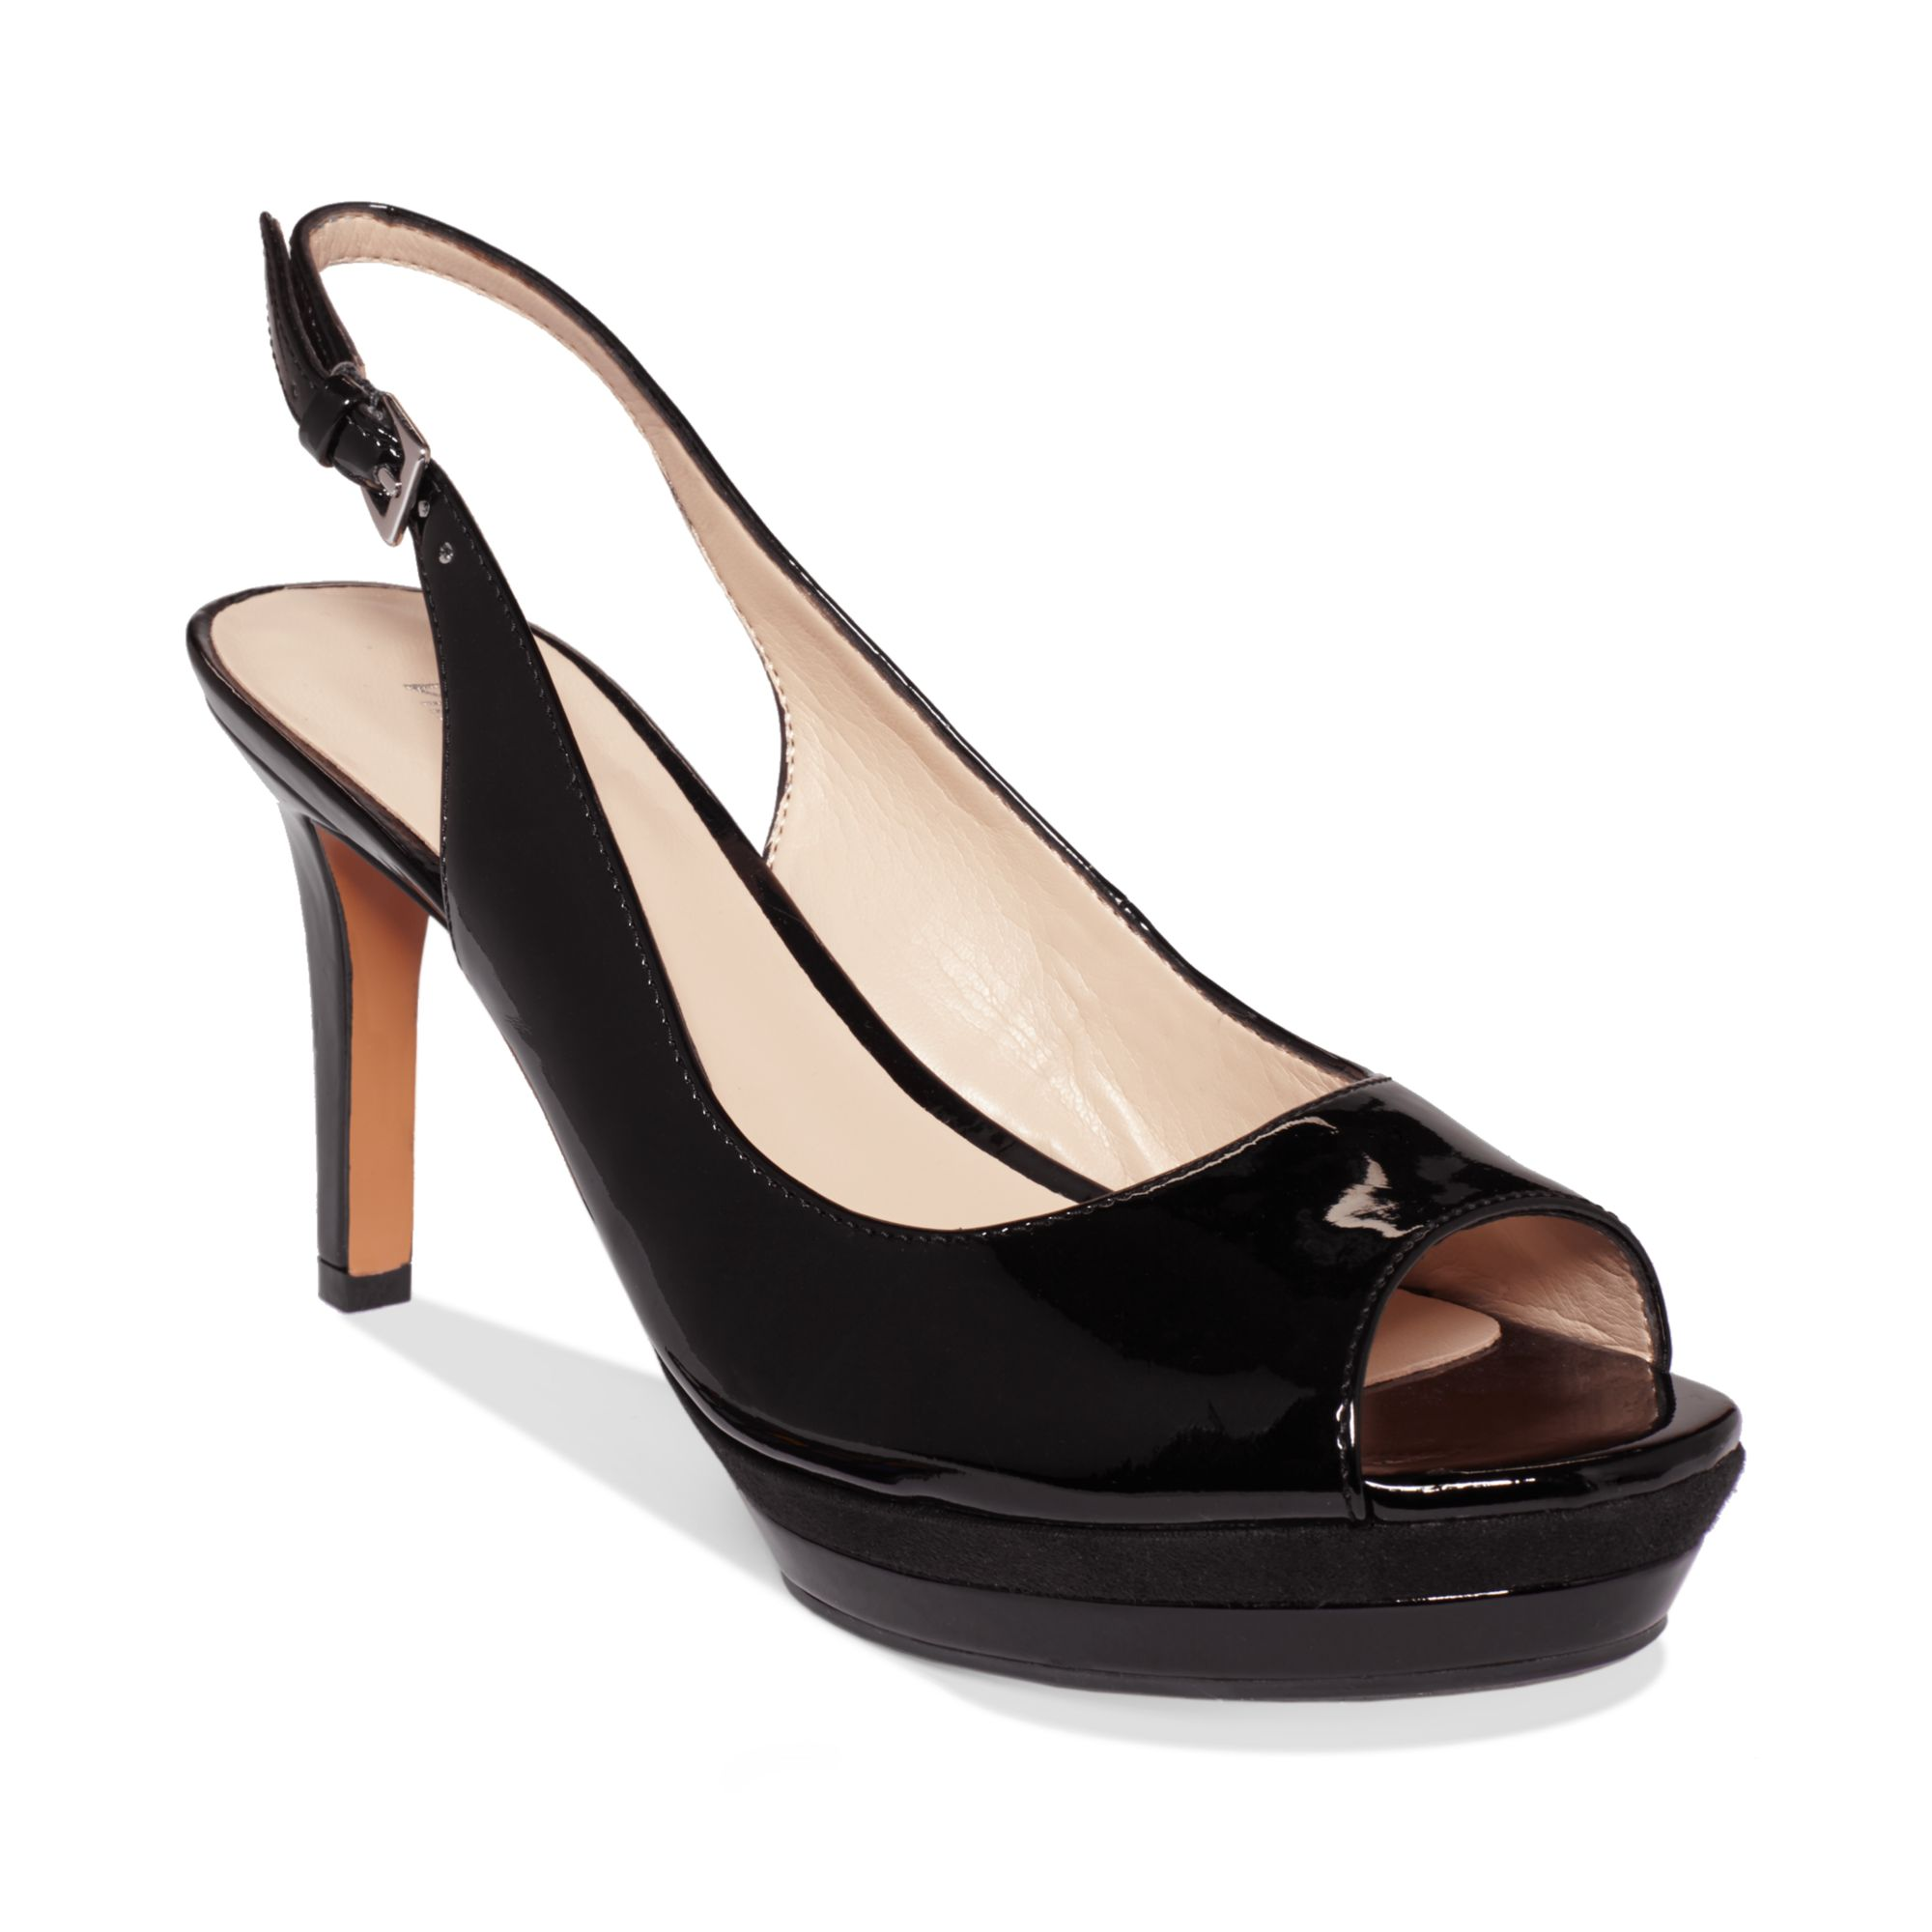 13a117ae5864 Lyst - Nine West Able Slingback Platform Pumps in Black